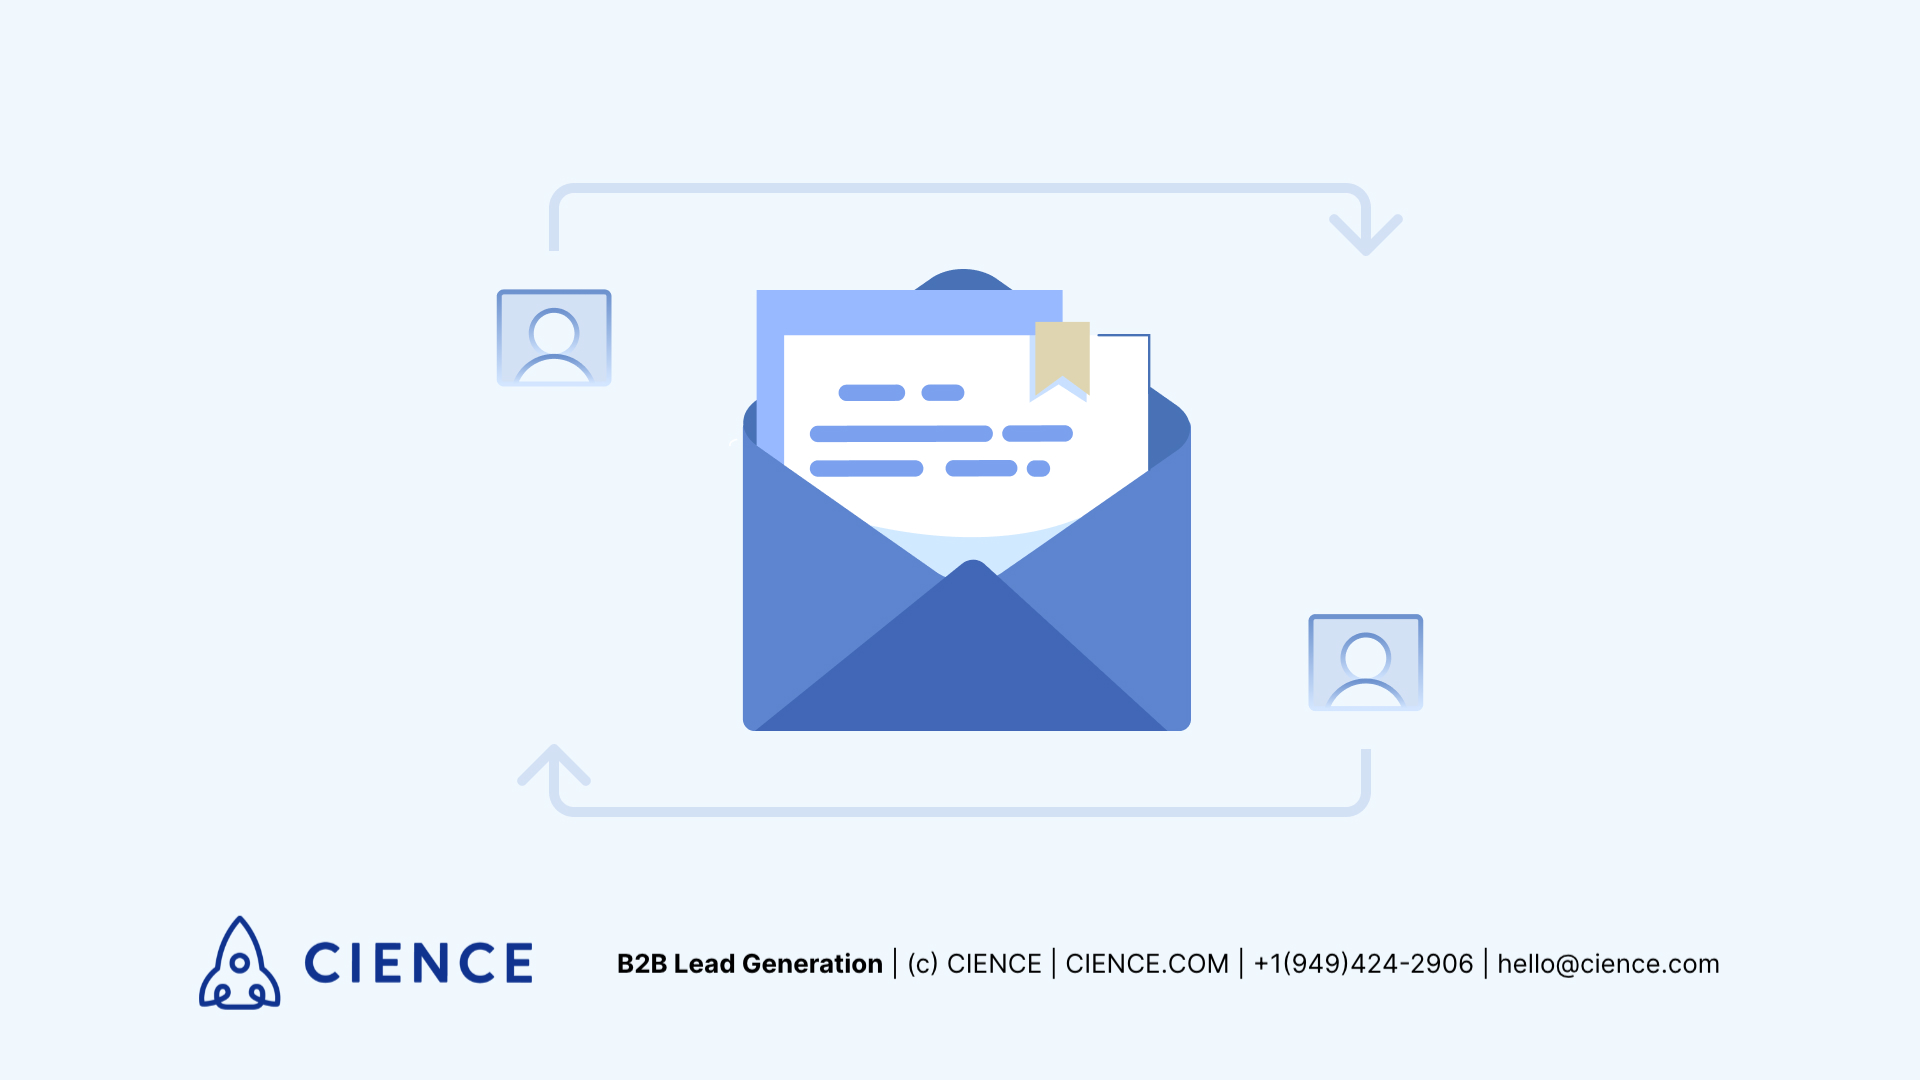 How to warm up cold leads through email using retargeting ads